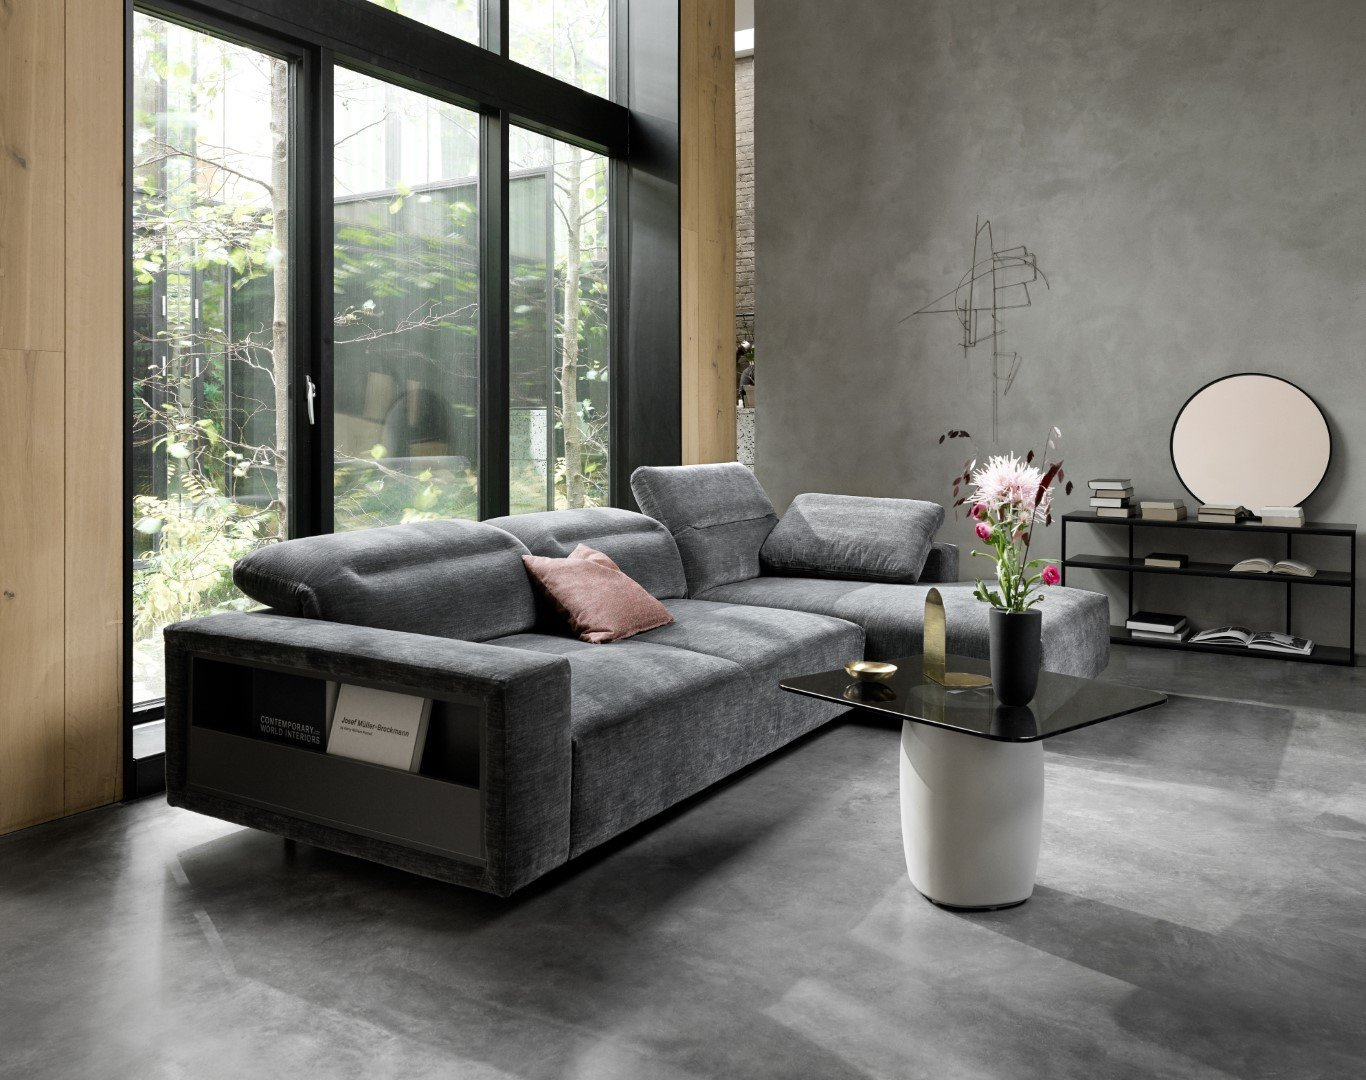 Modular and customisable sofas and living room furniture